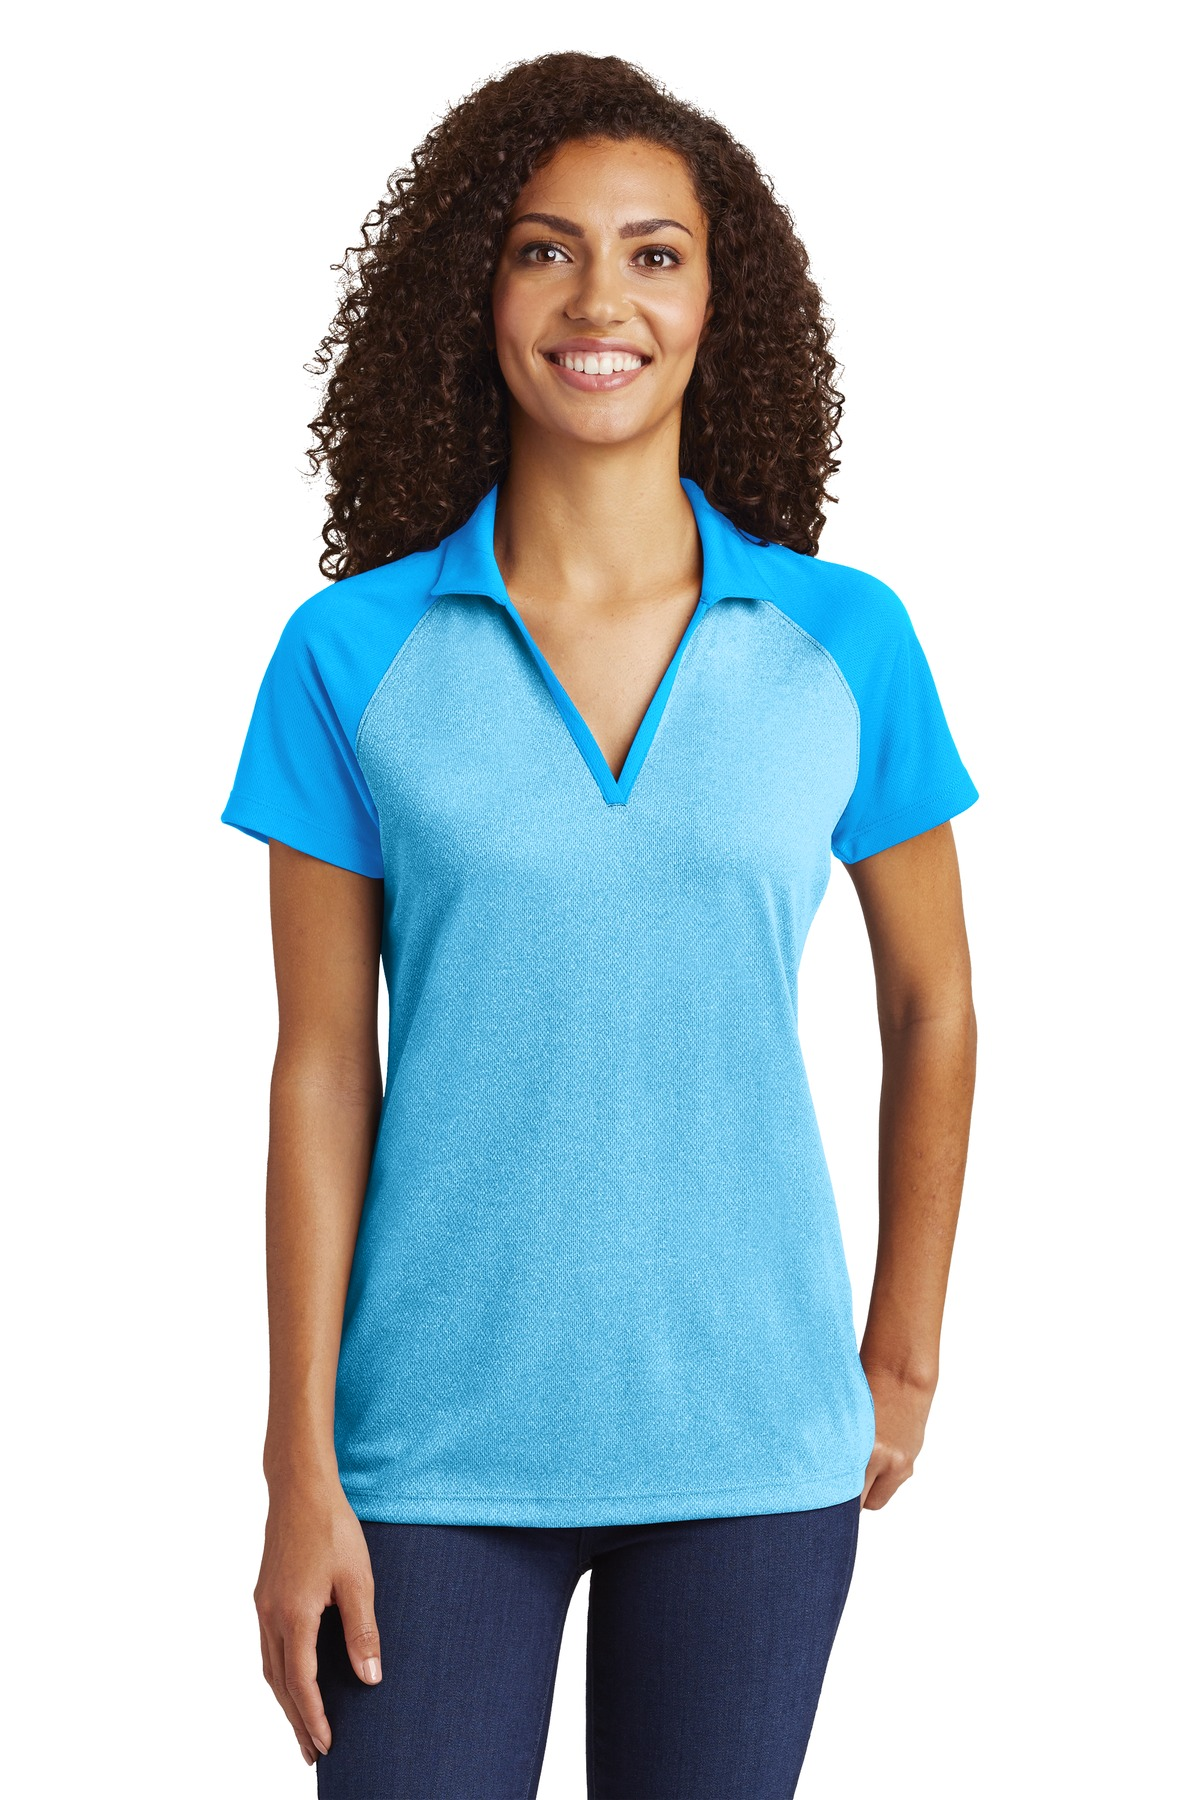 Sport-Tek  ®  Ladies PosiCharge  ®  RacerMesh  ®  Raglan Heather Block Polo. LST641 - Pond Blue Heather/Pond Blue